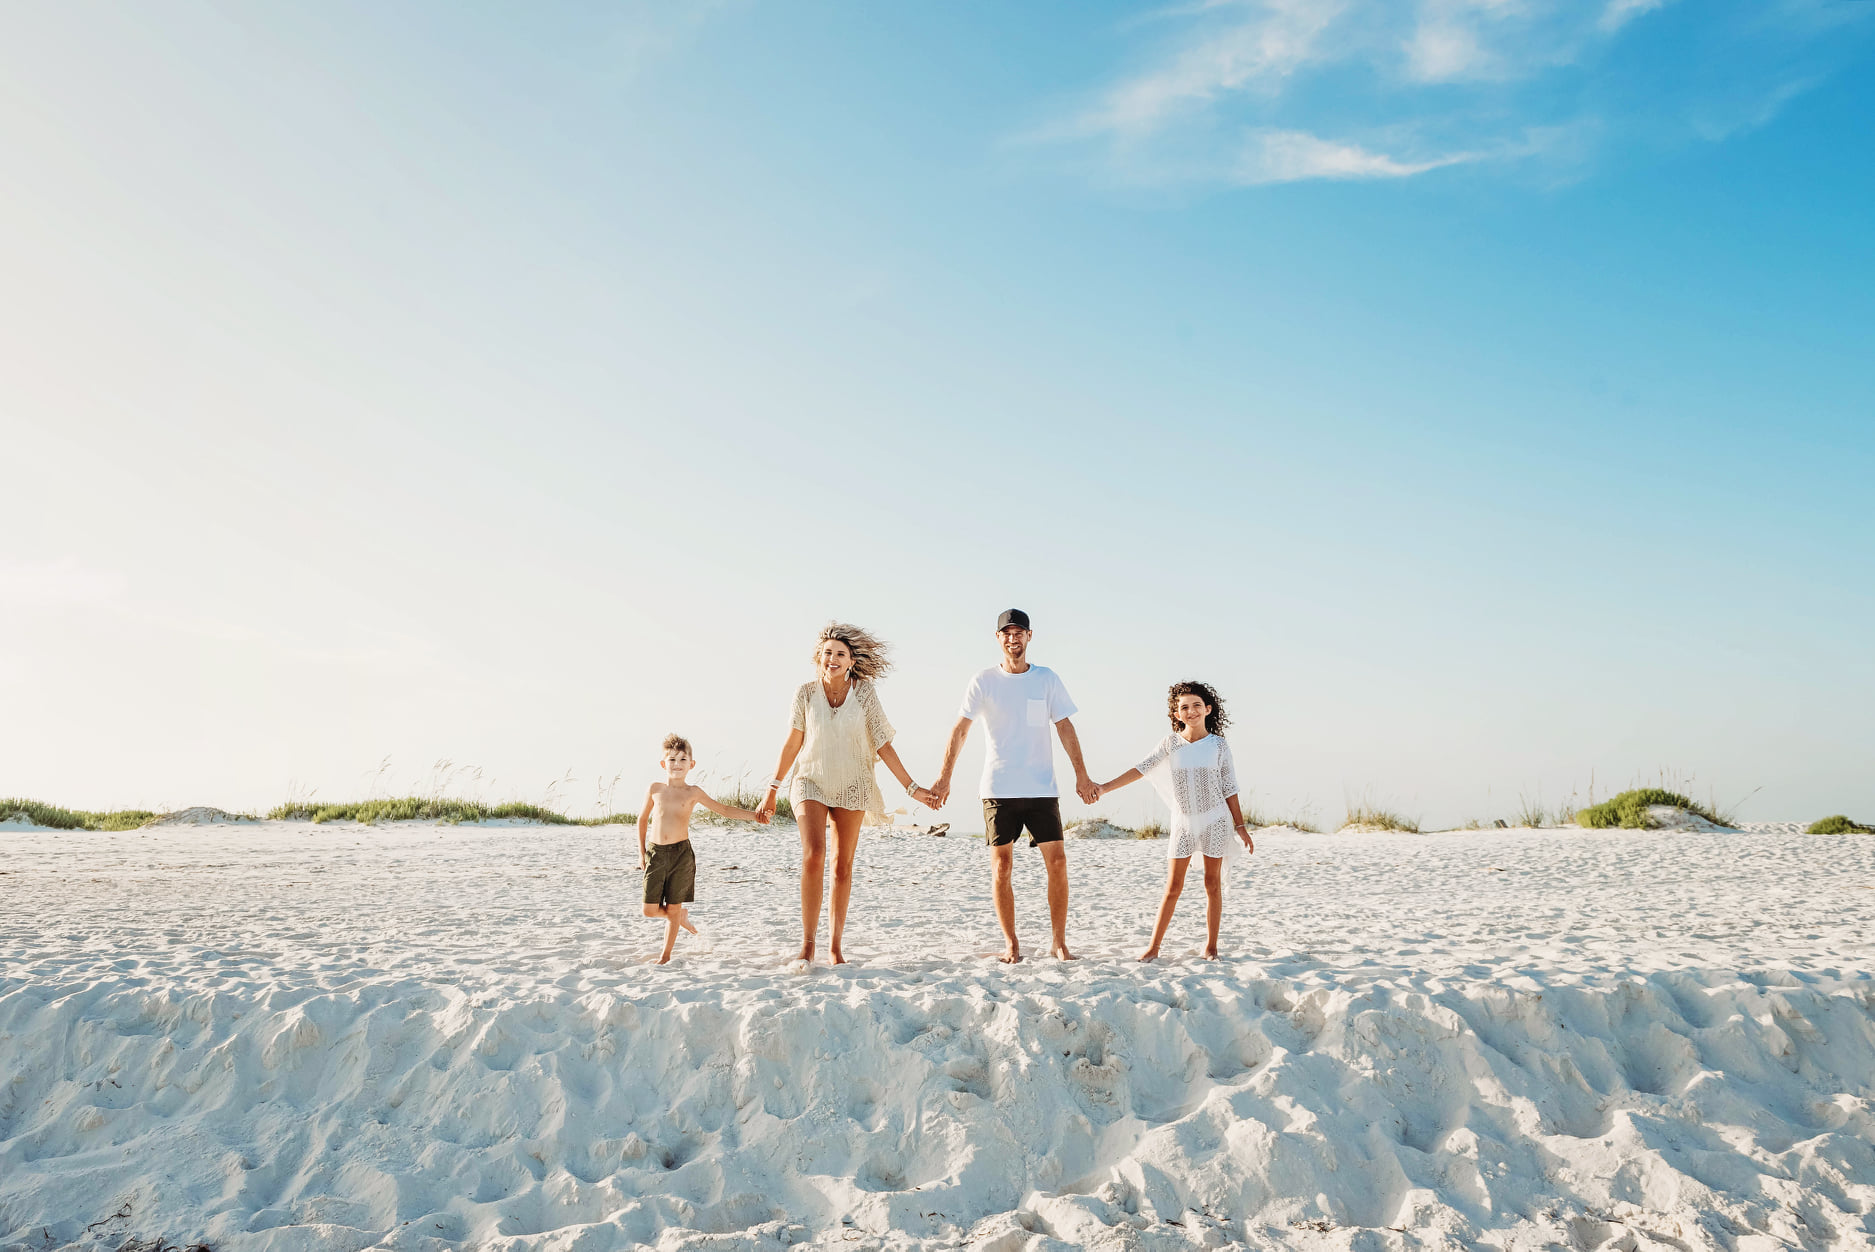 pensacola beach family photography by Jordan Burch